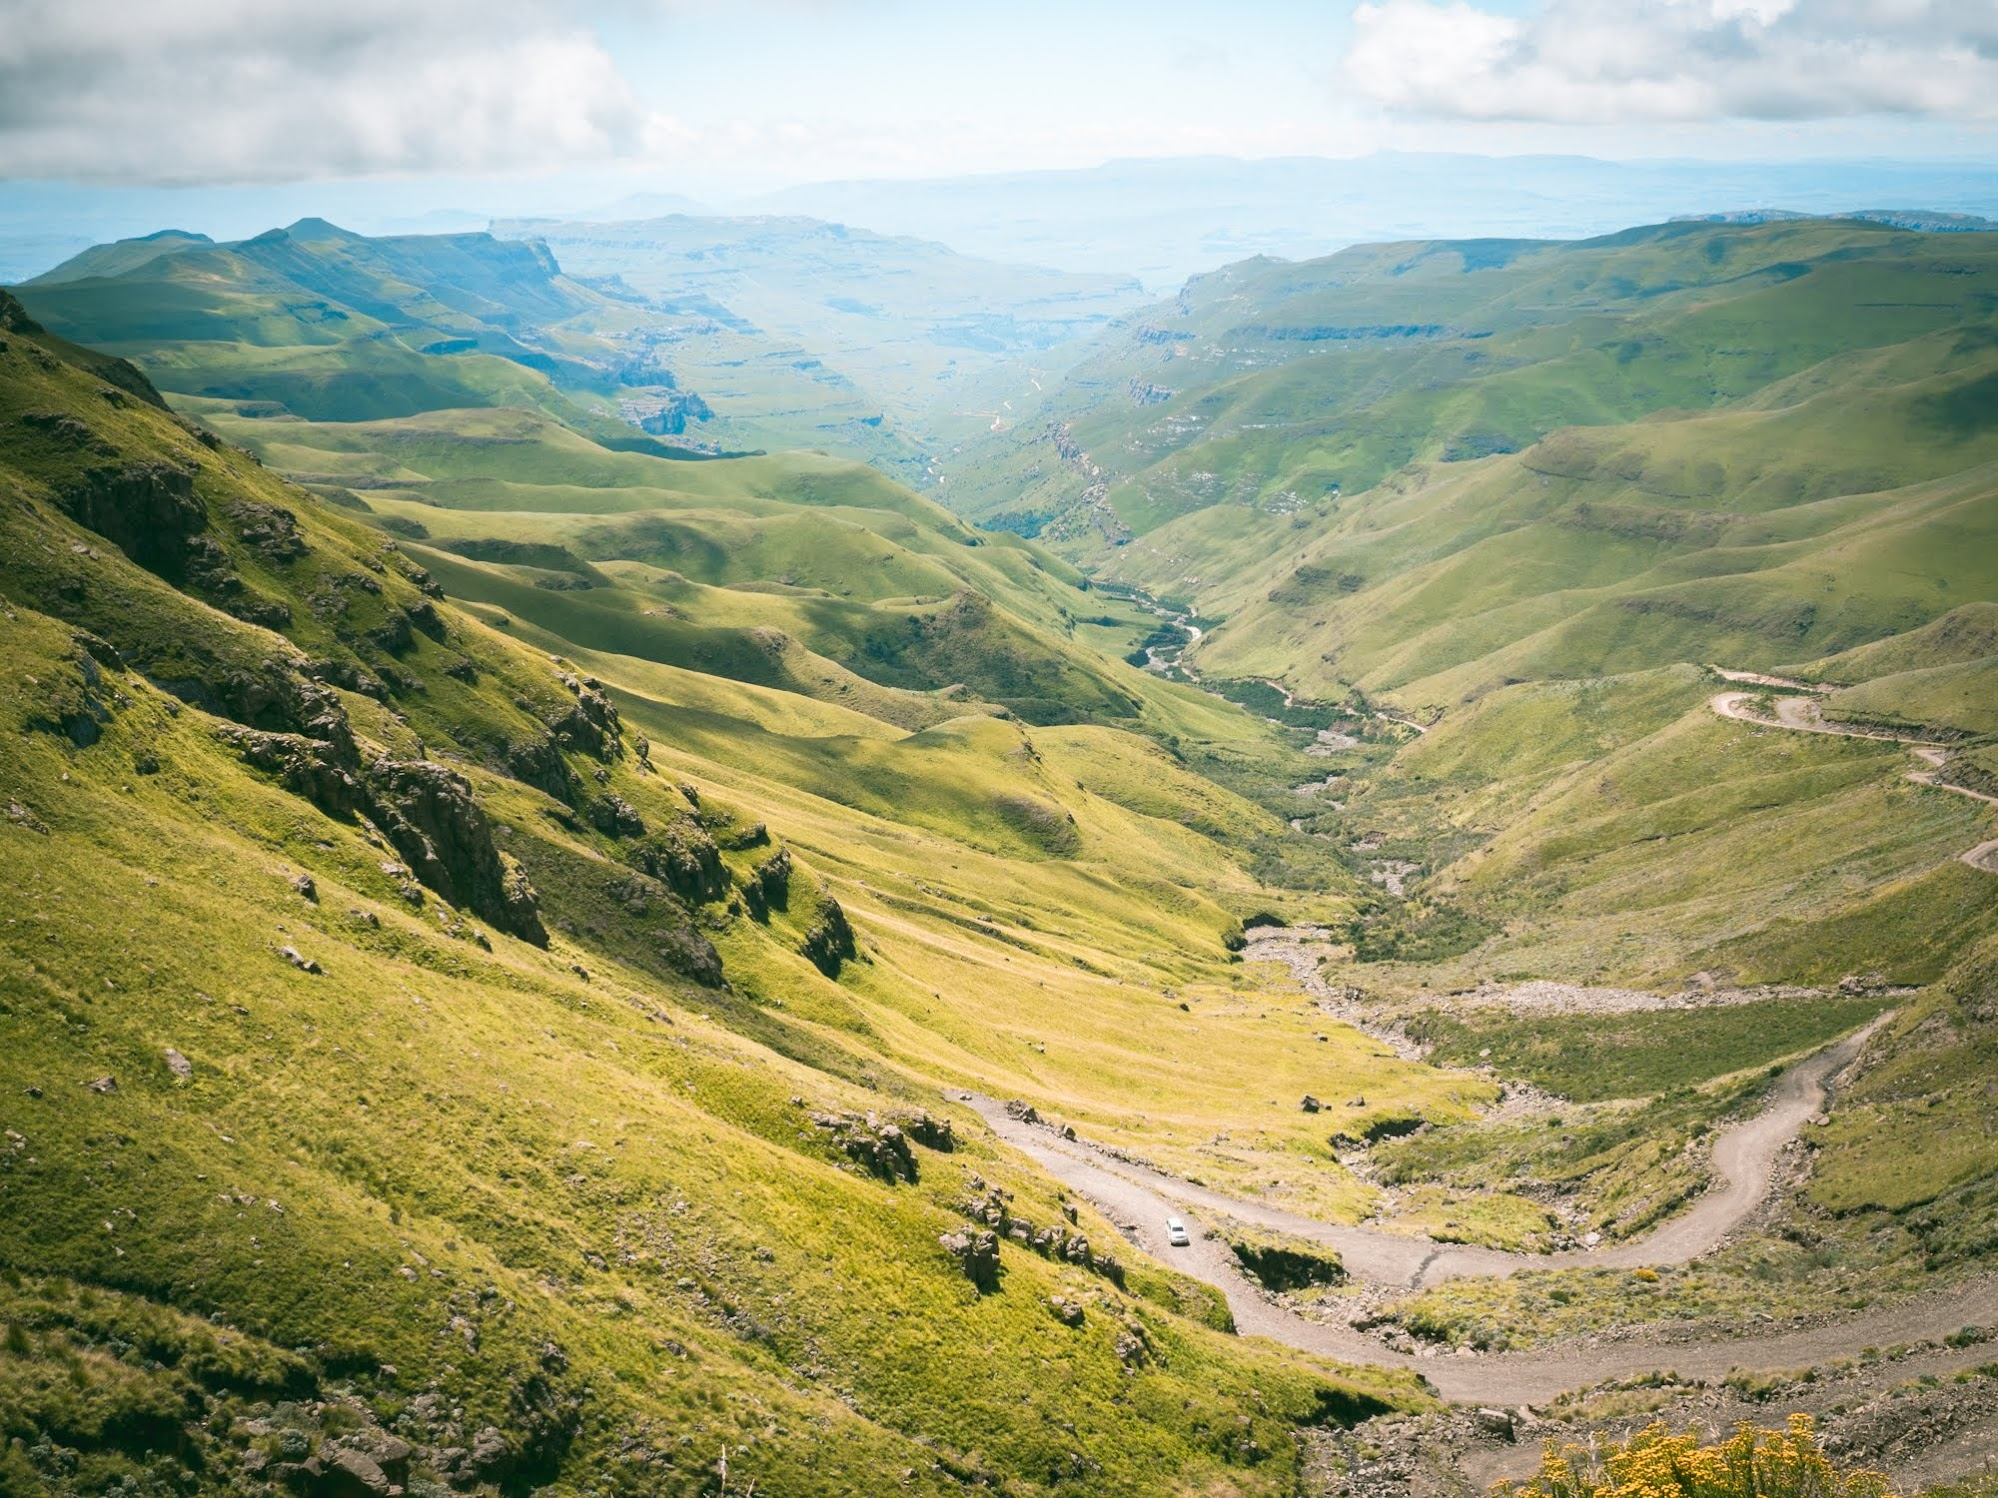 The twisty road of Sani Pass